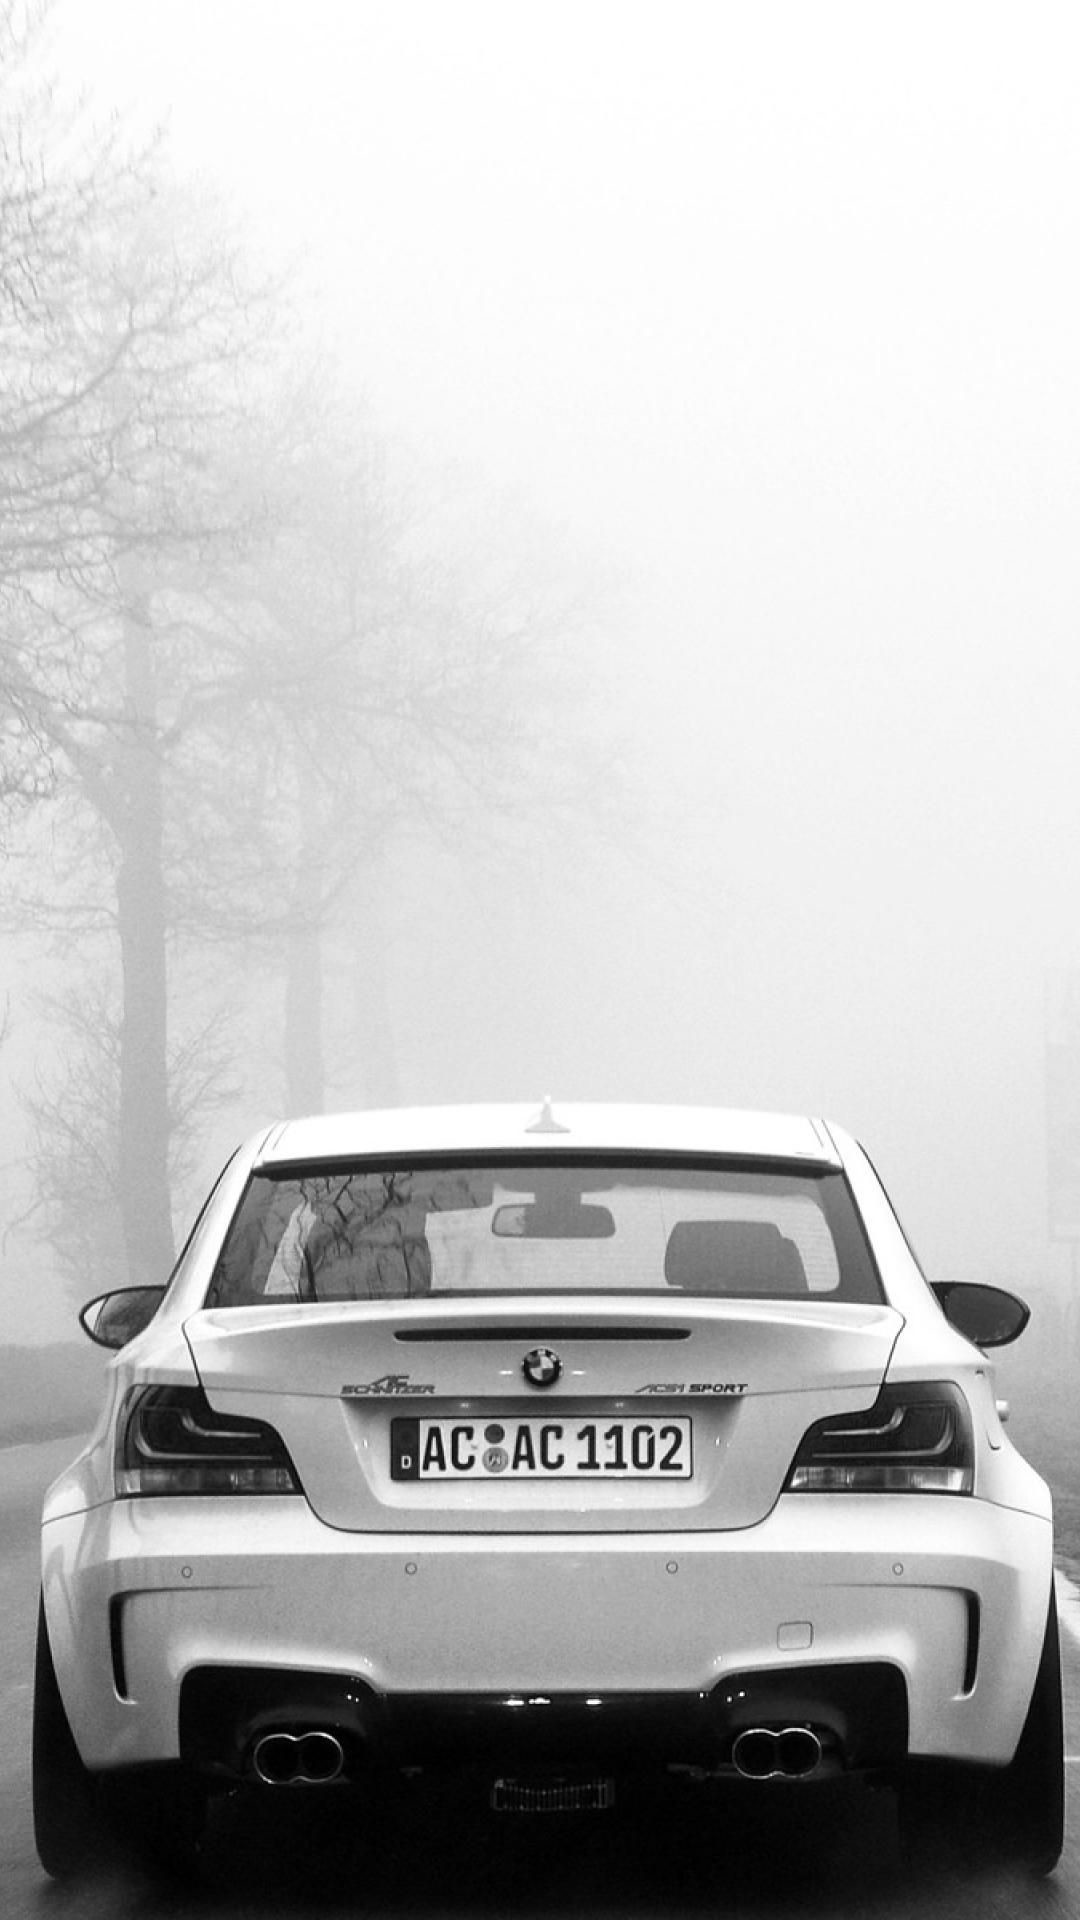 Res: 1080x1920, Bmw 135I Coupe Auto & Moto BMW Iphone 6 Plus Wallpaper